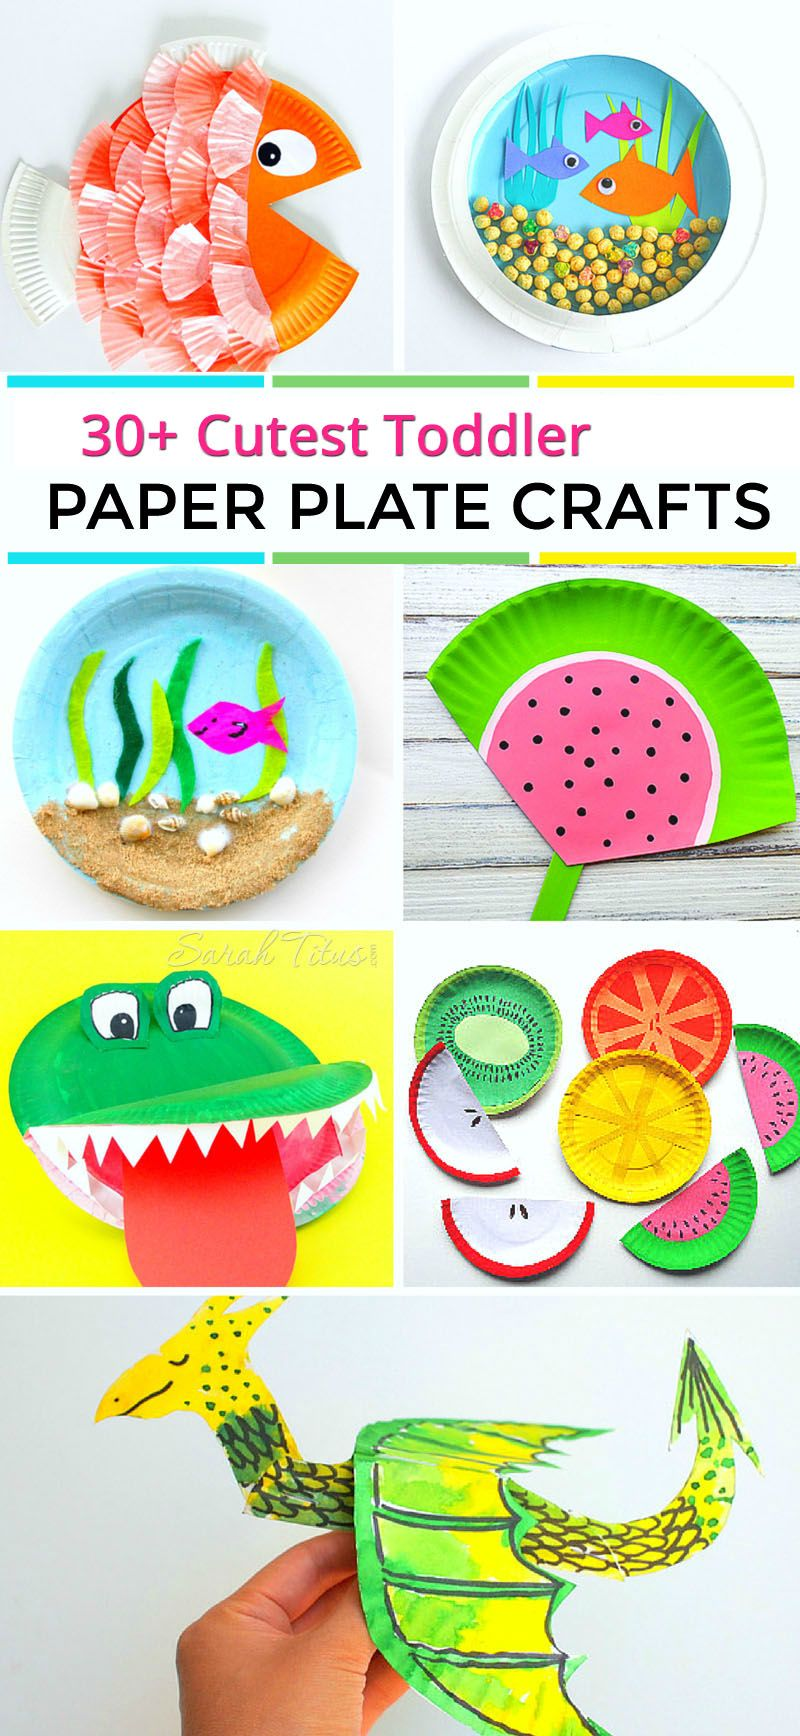 30 Cutest Toddler Paper Plate Crafts Ogt Blogger Friends